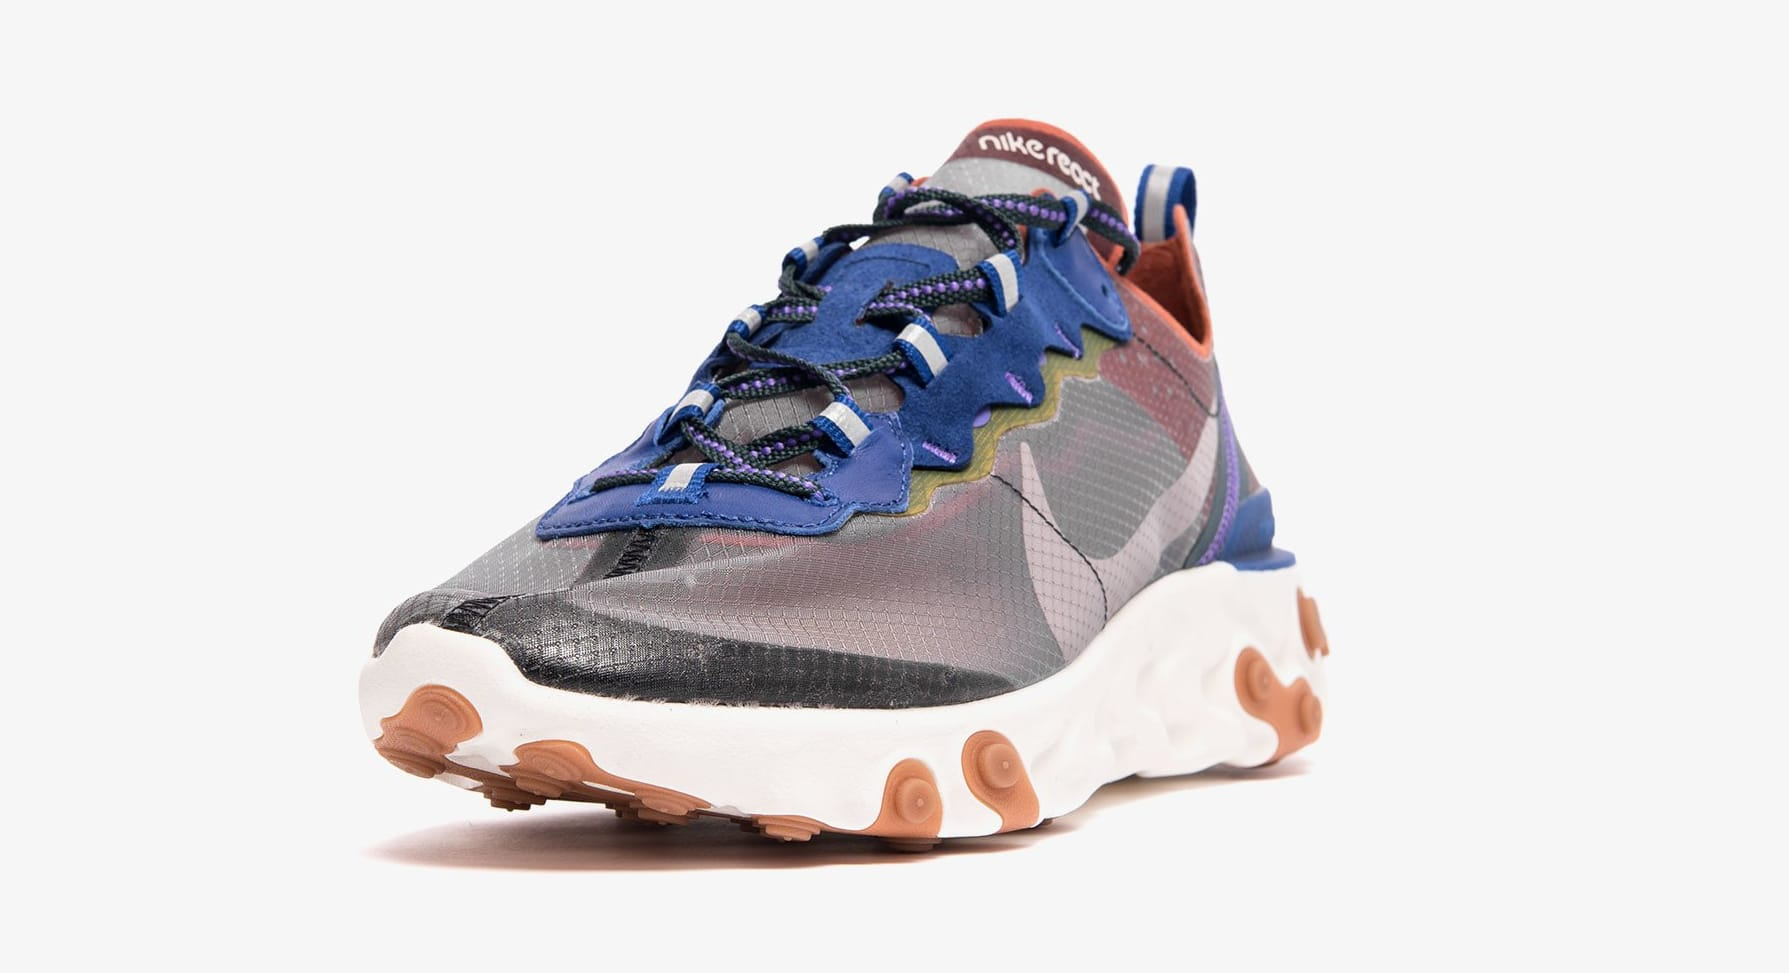 taille 40 d180e f75eb Nike React Element 87 'Dusty Peach' AQ1090-200 'Moss' AQ1090 ...